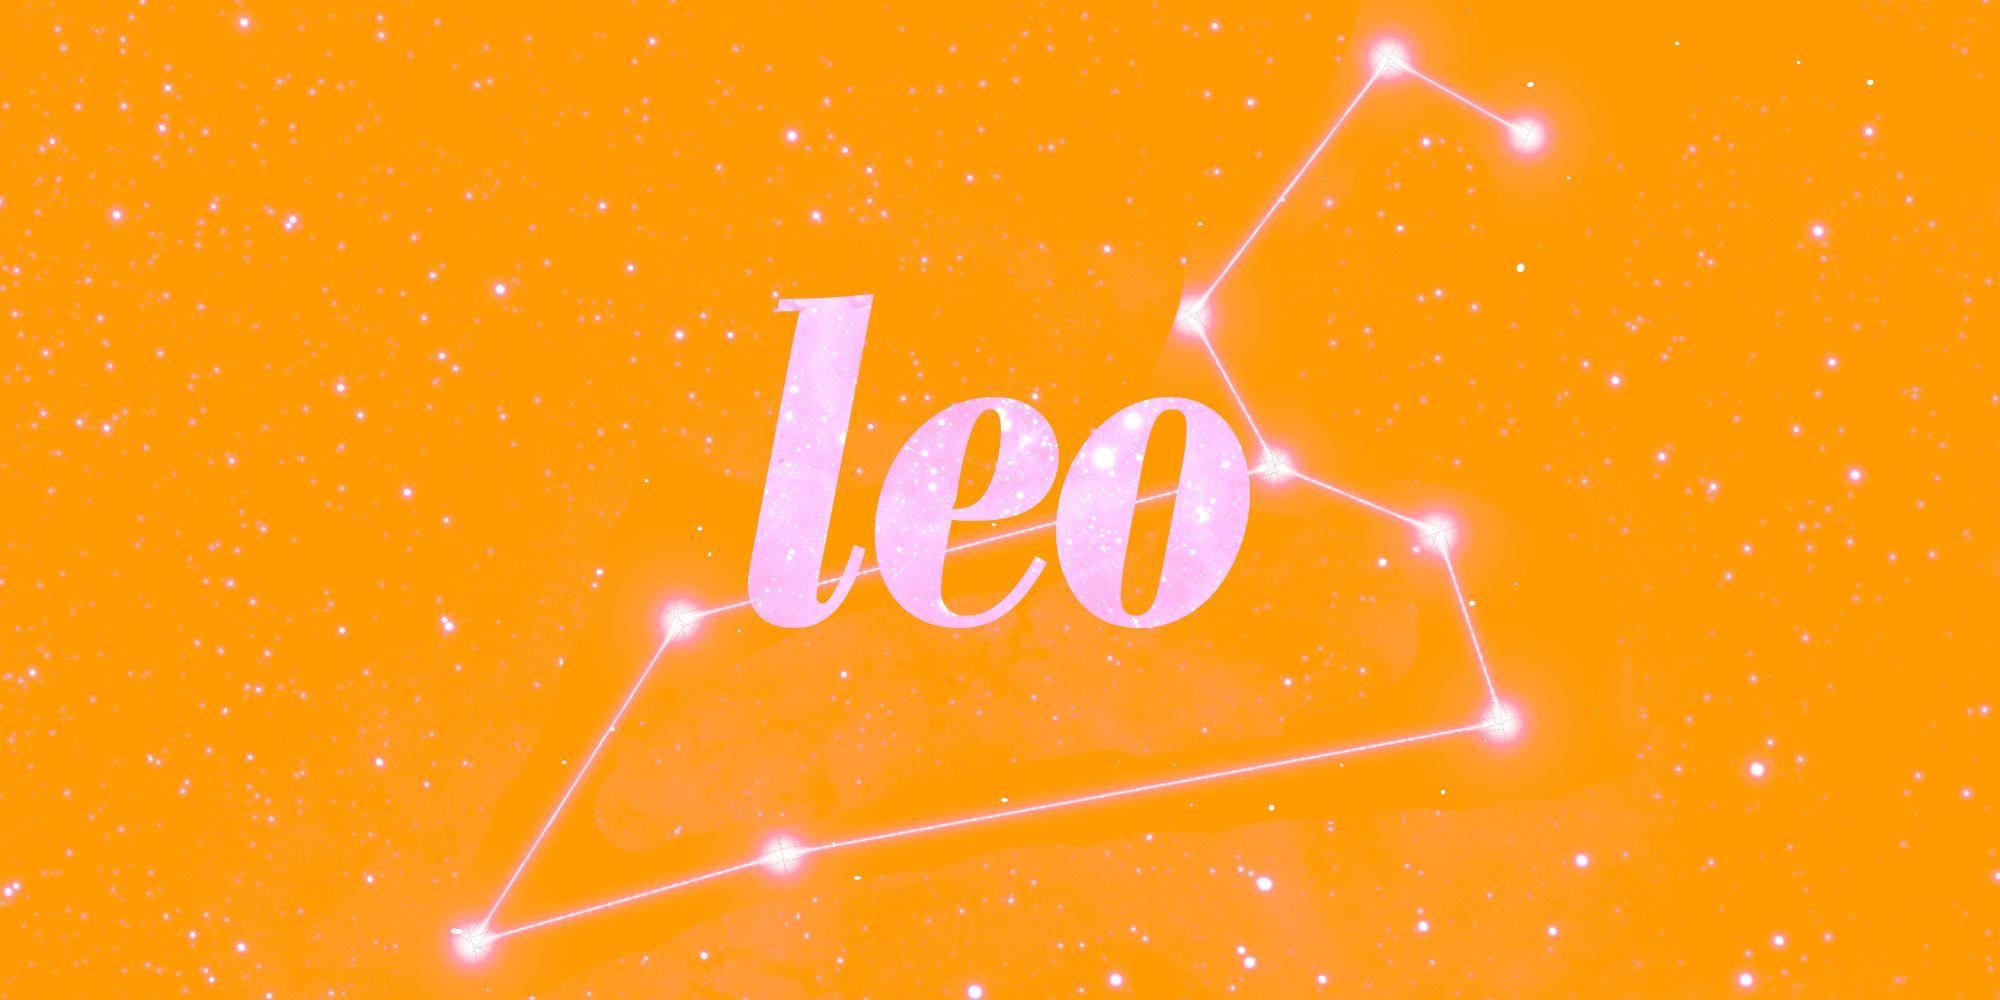 Leo horoscopes.